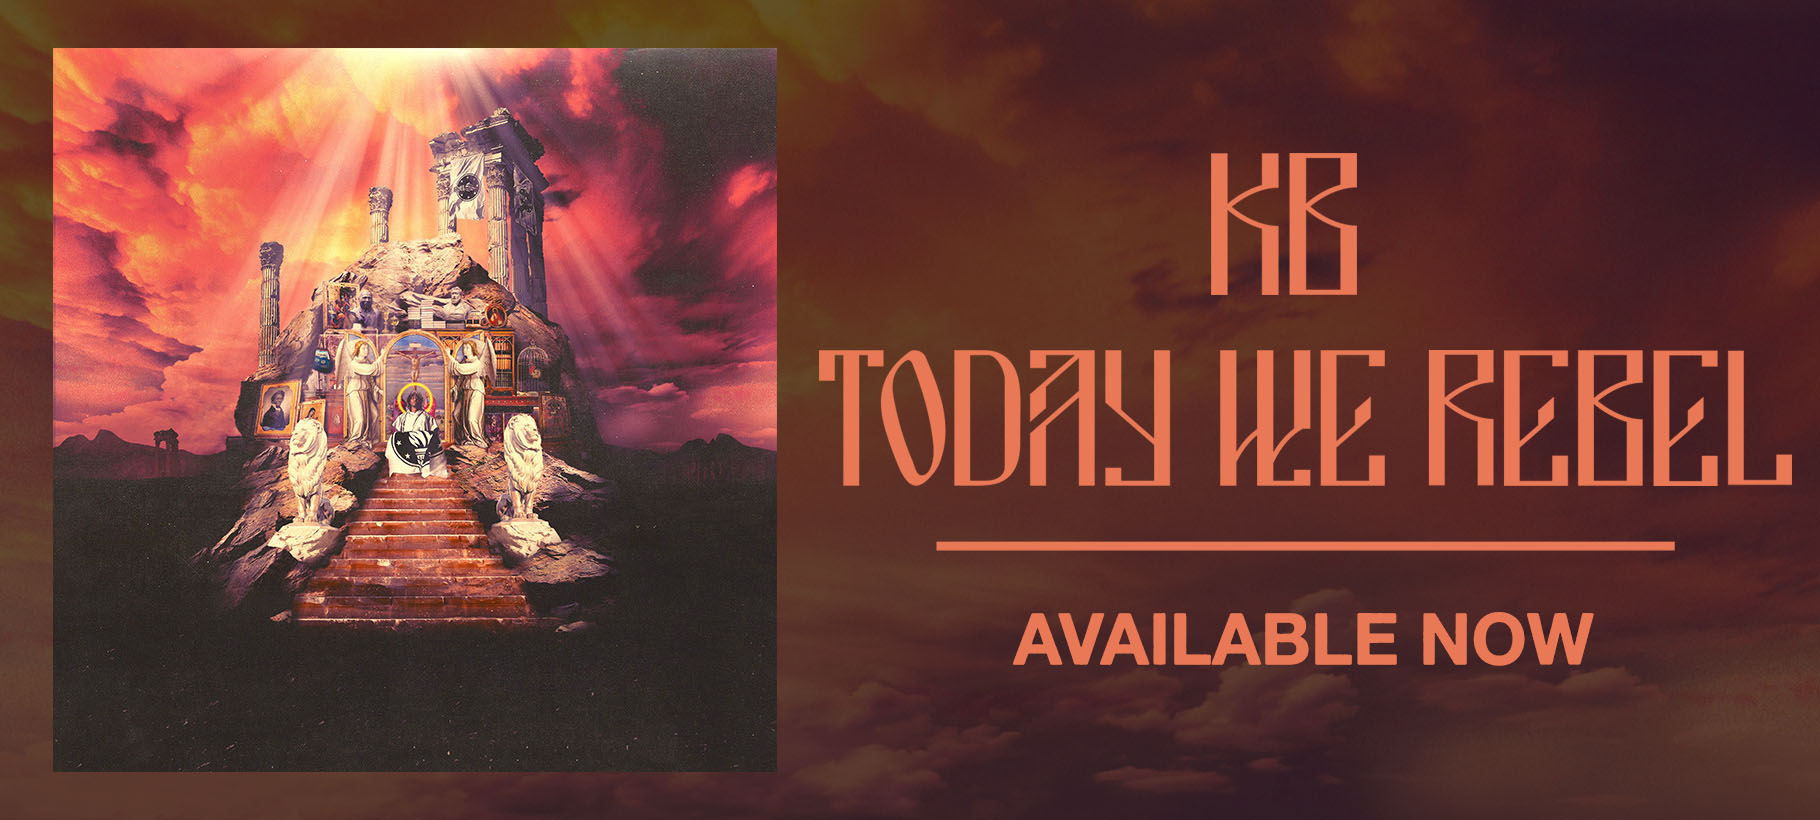 KB x Today We Rebel x Out Now